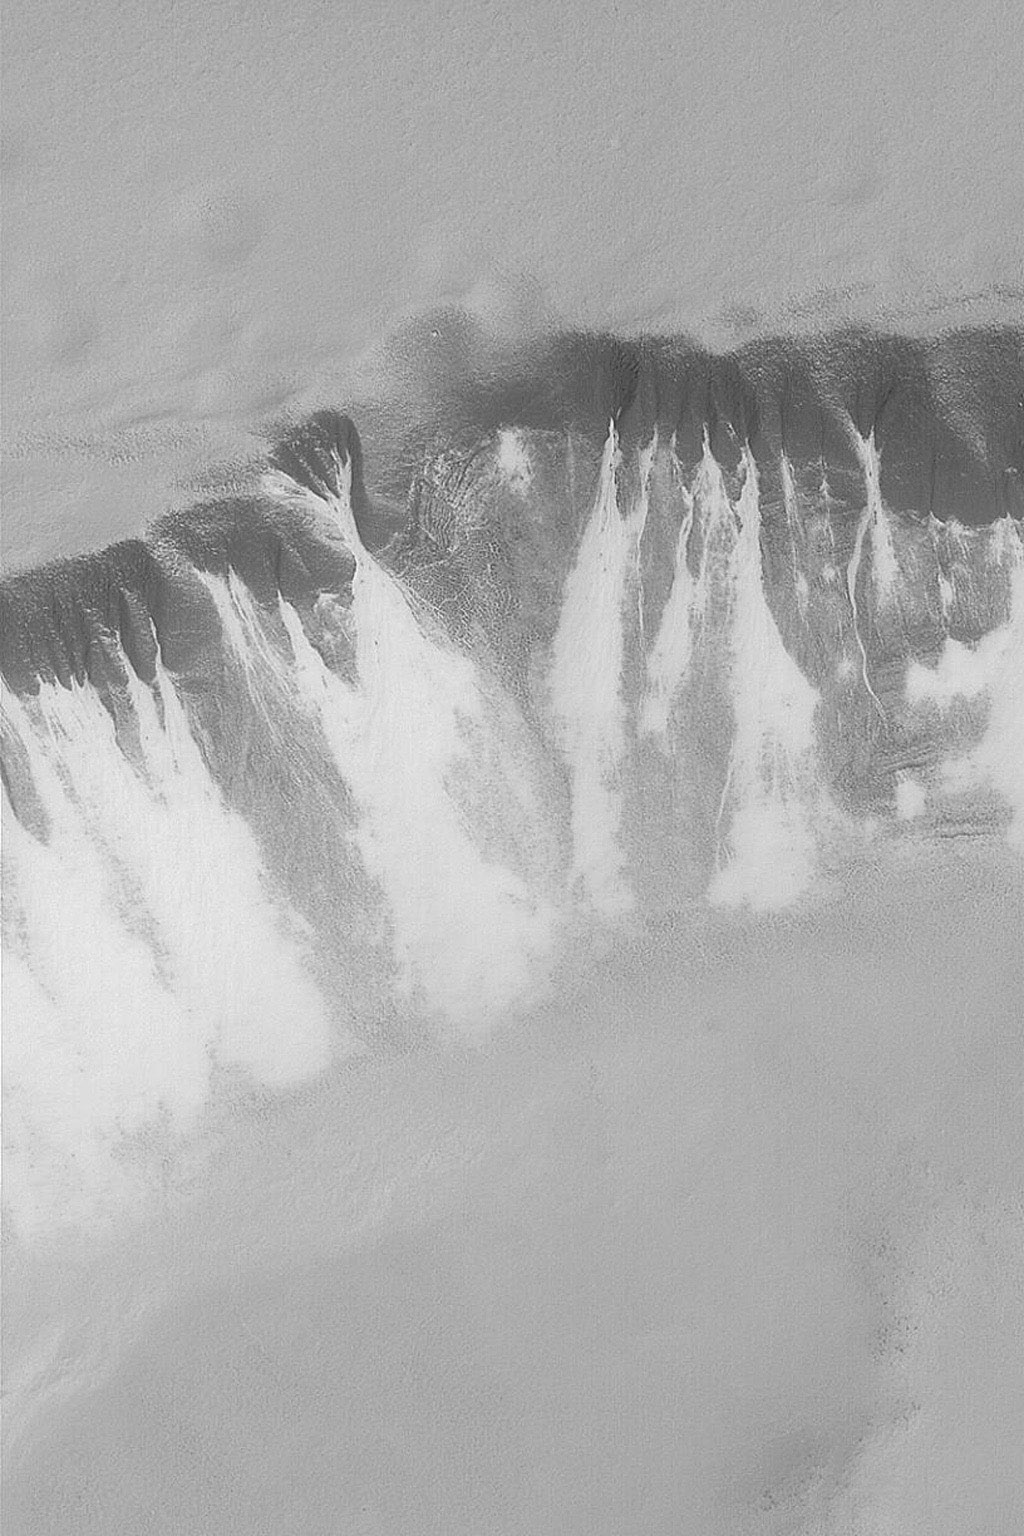 NASA's Mars Global Surveyor shows defrosting gullies and mass movement (landslide) features in the south polar region of Mars.